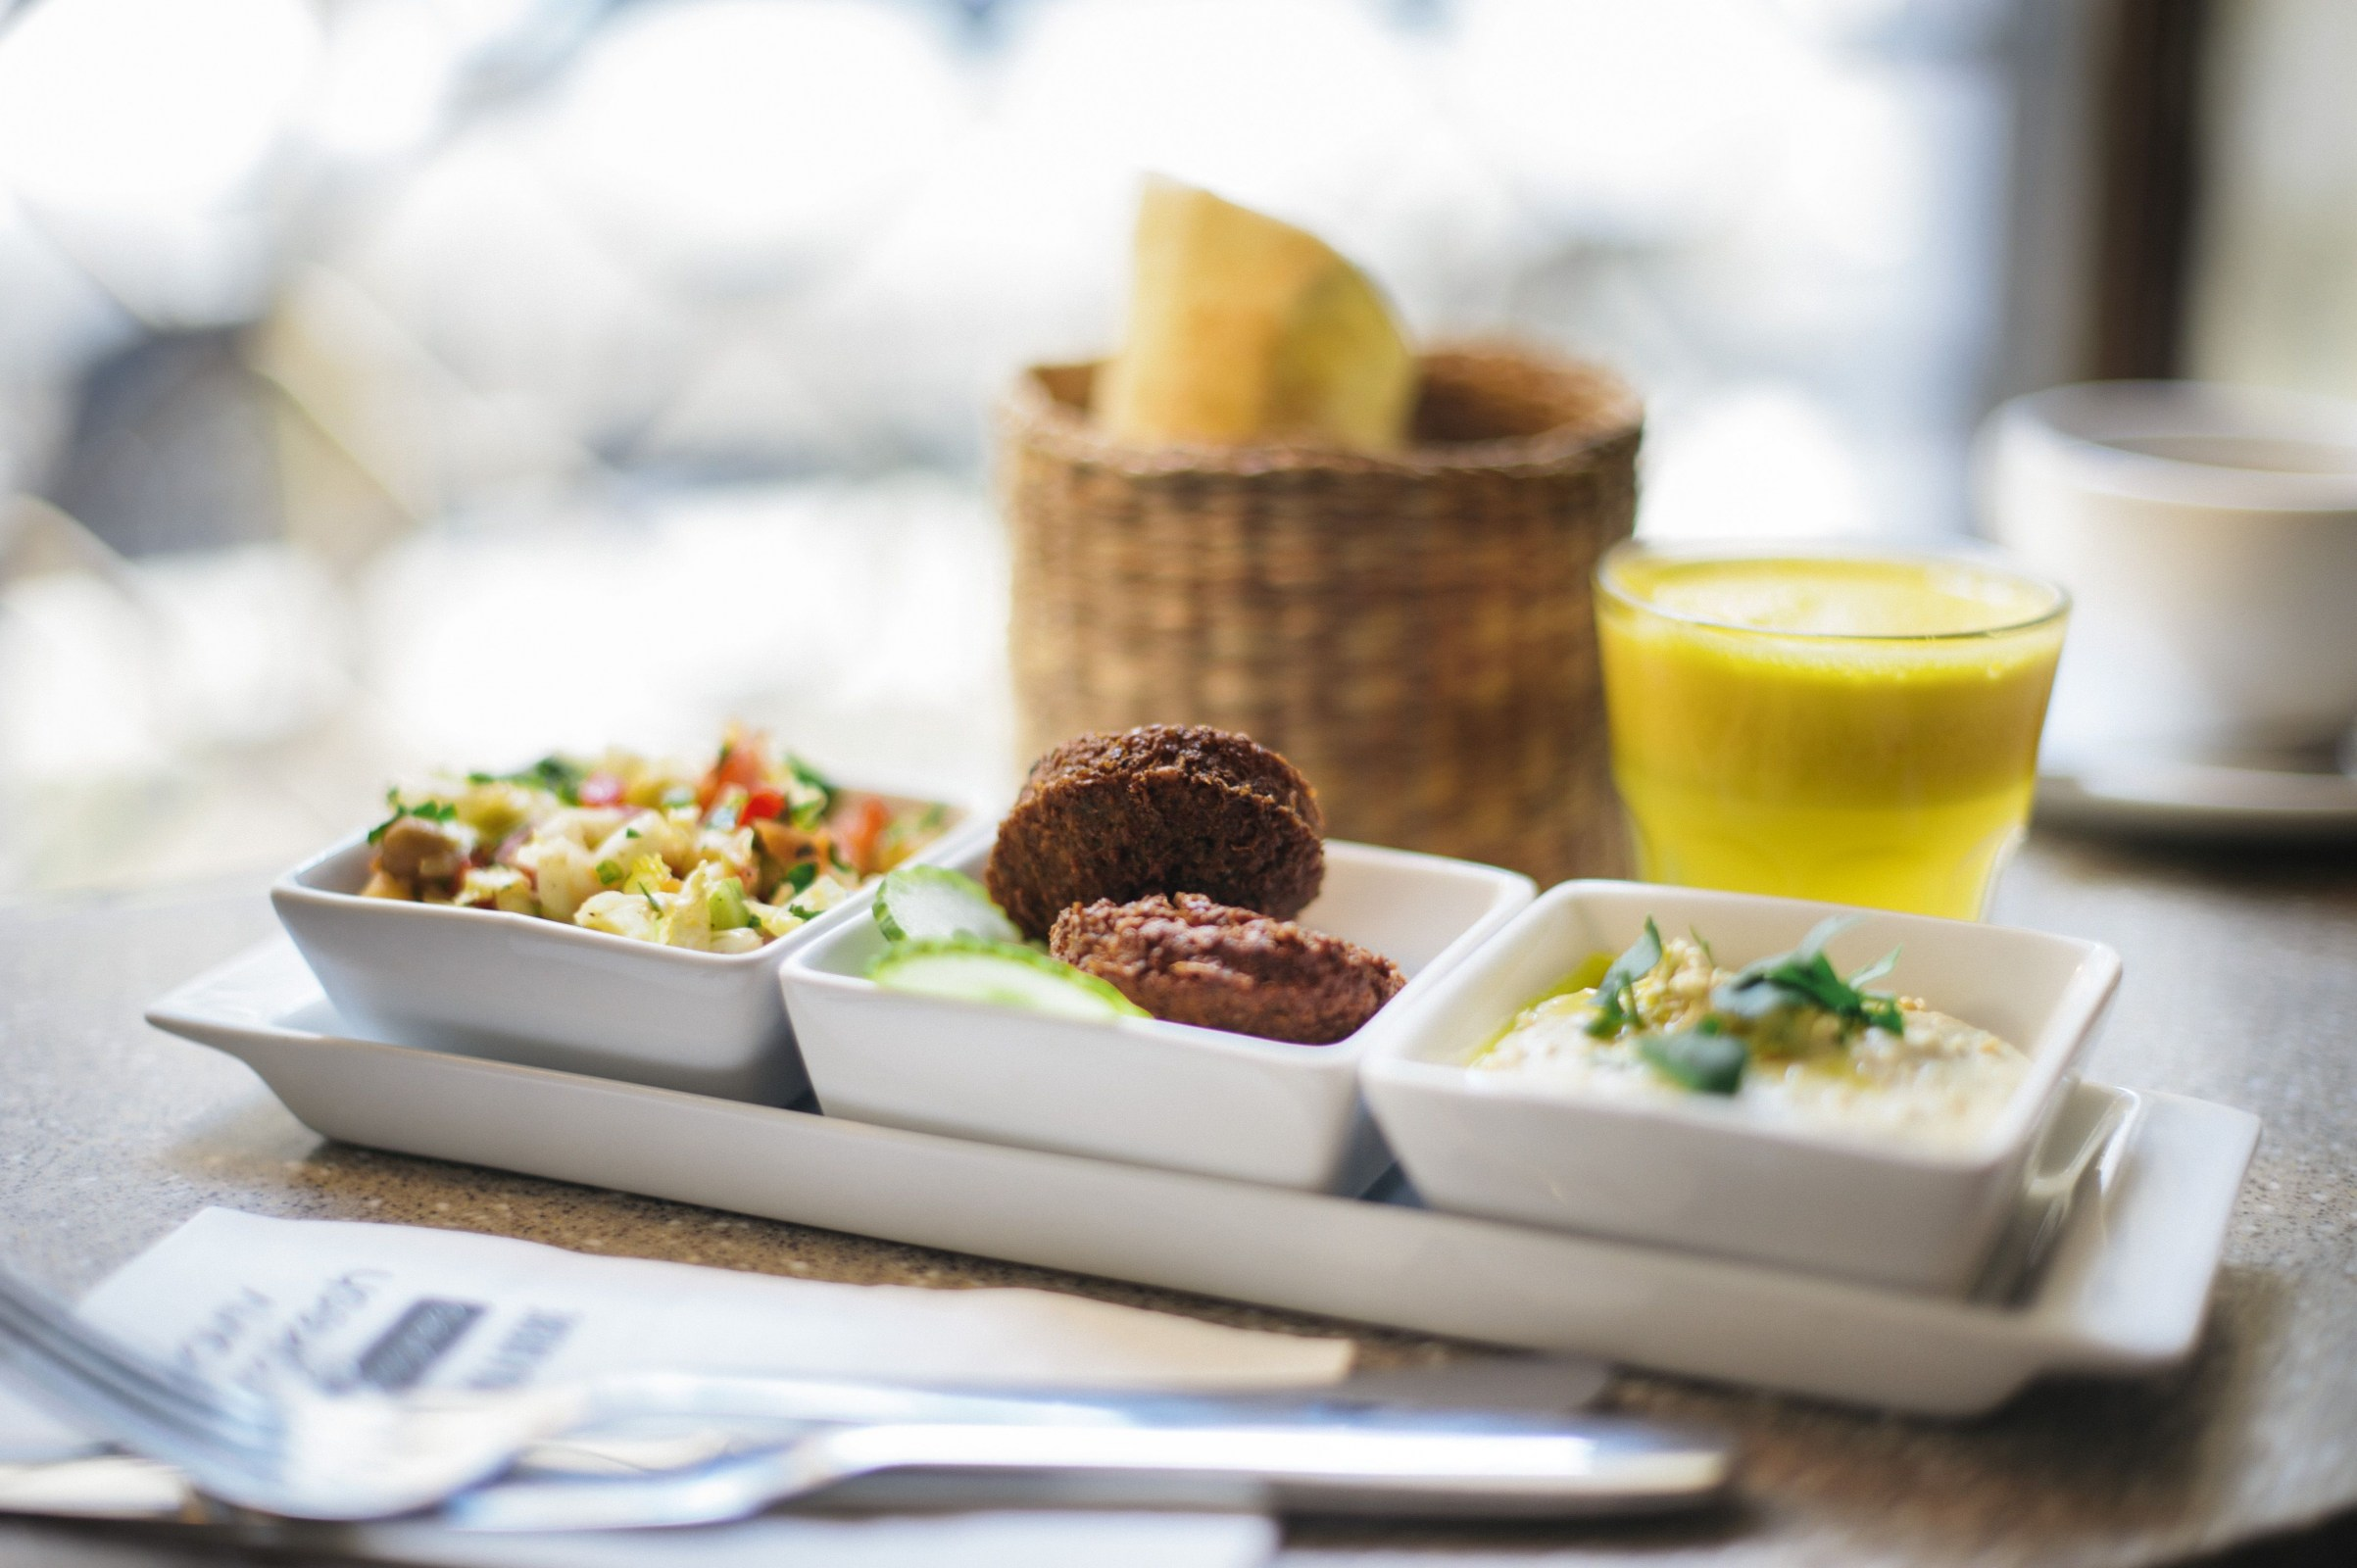 Mezze plate with falafel and hummous, photo: Kotlarz